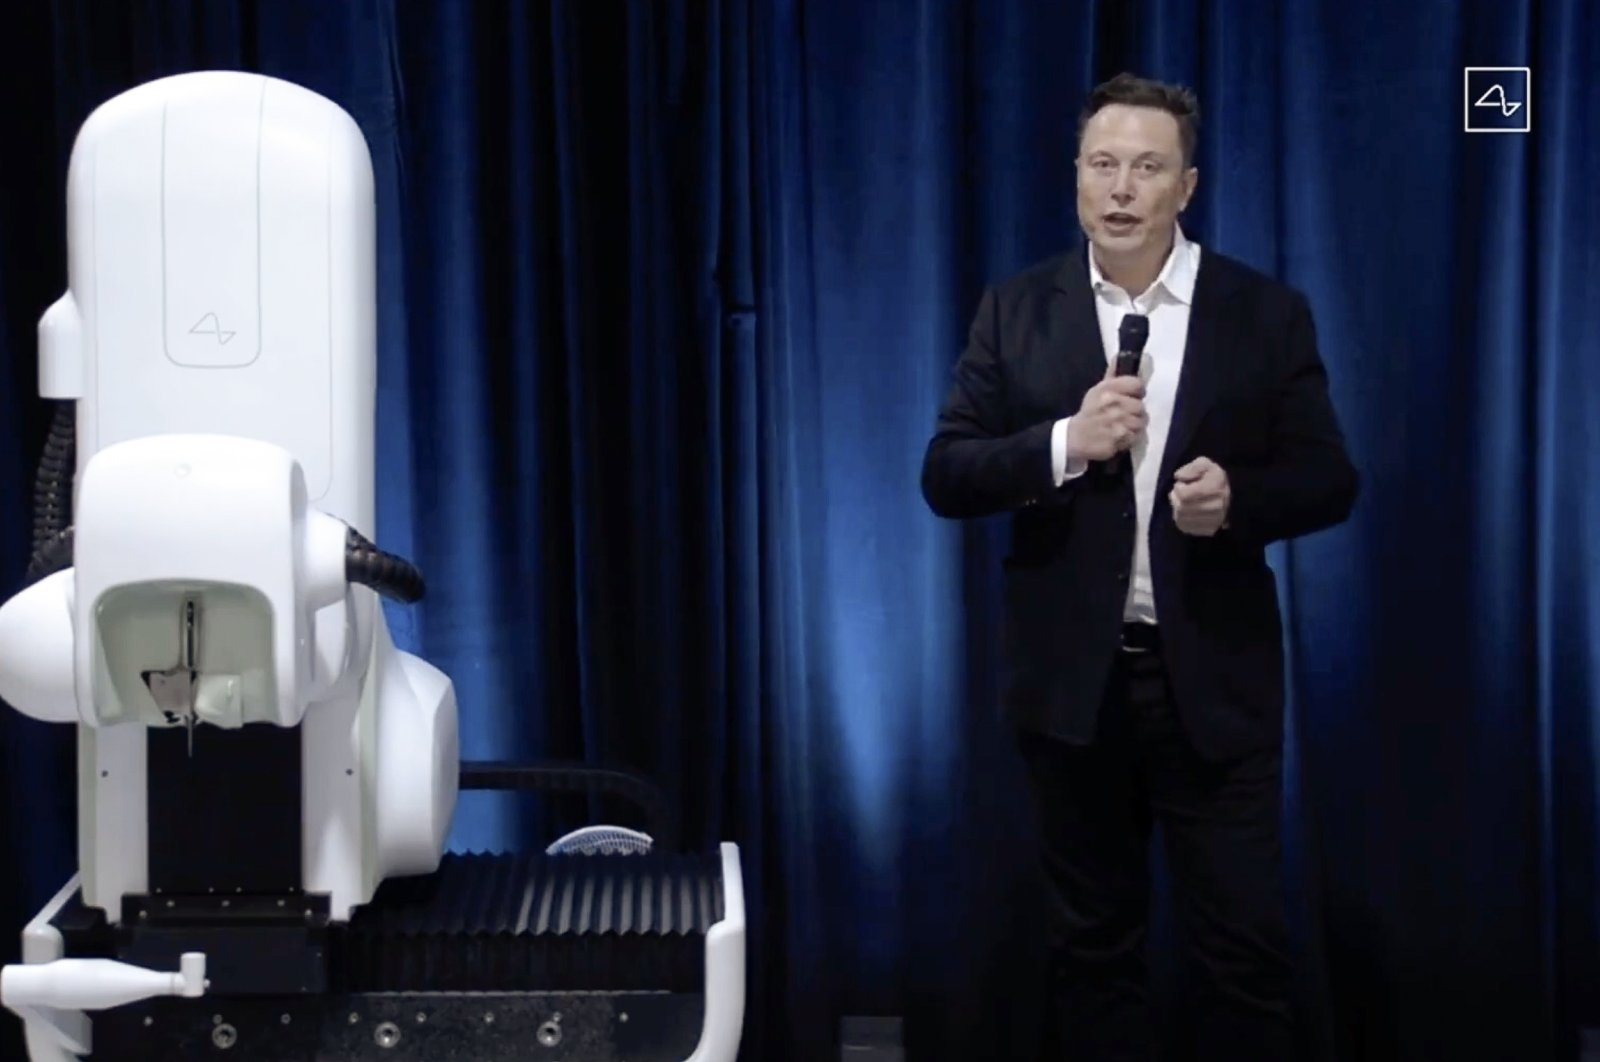 This video grab made from the online Neuralink livestream shows Elon Musk standing next to the surgical robot during his Neuralink presentation, Aug. 28, 2020. (AFP Photo/Neuralink)